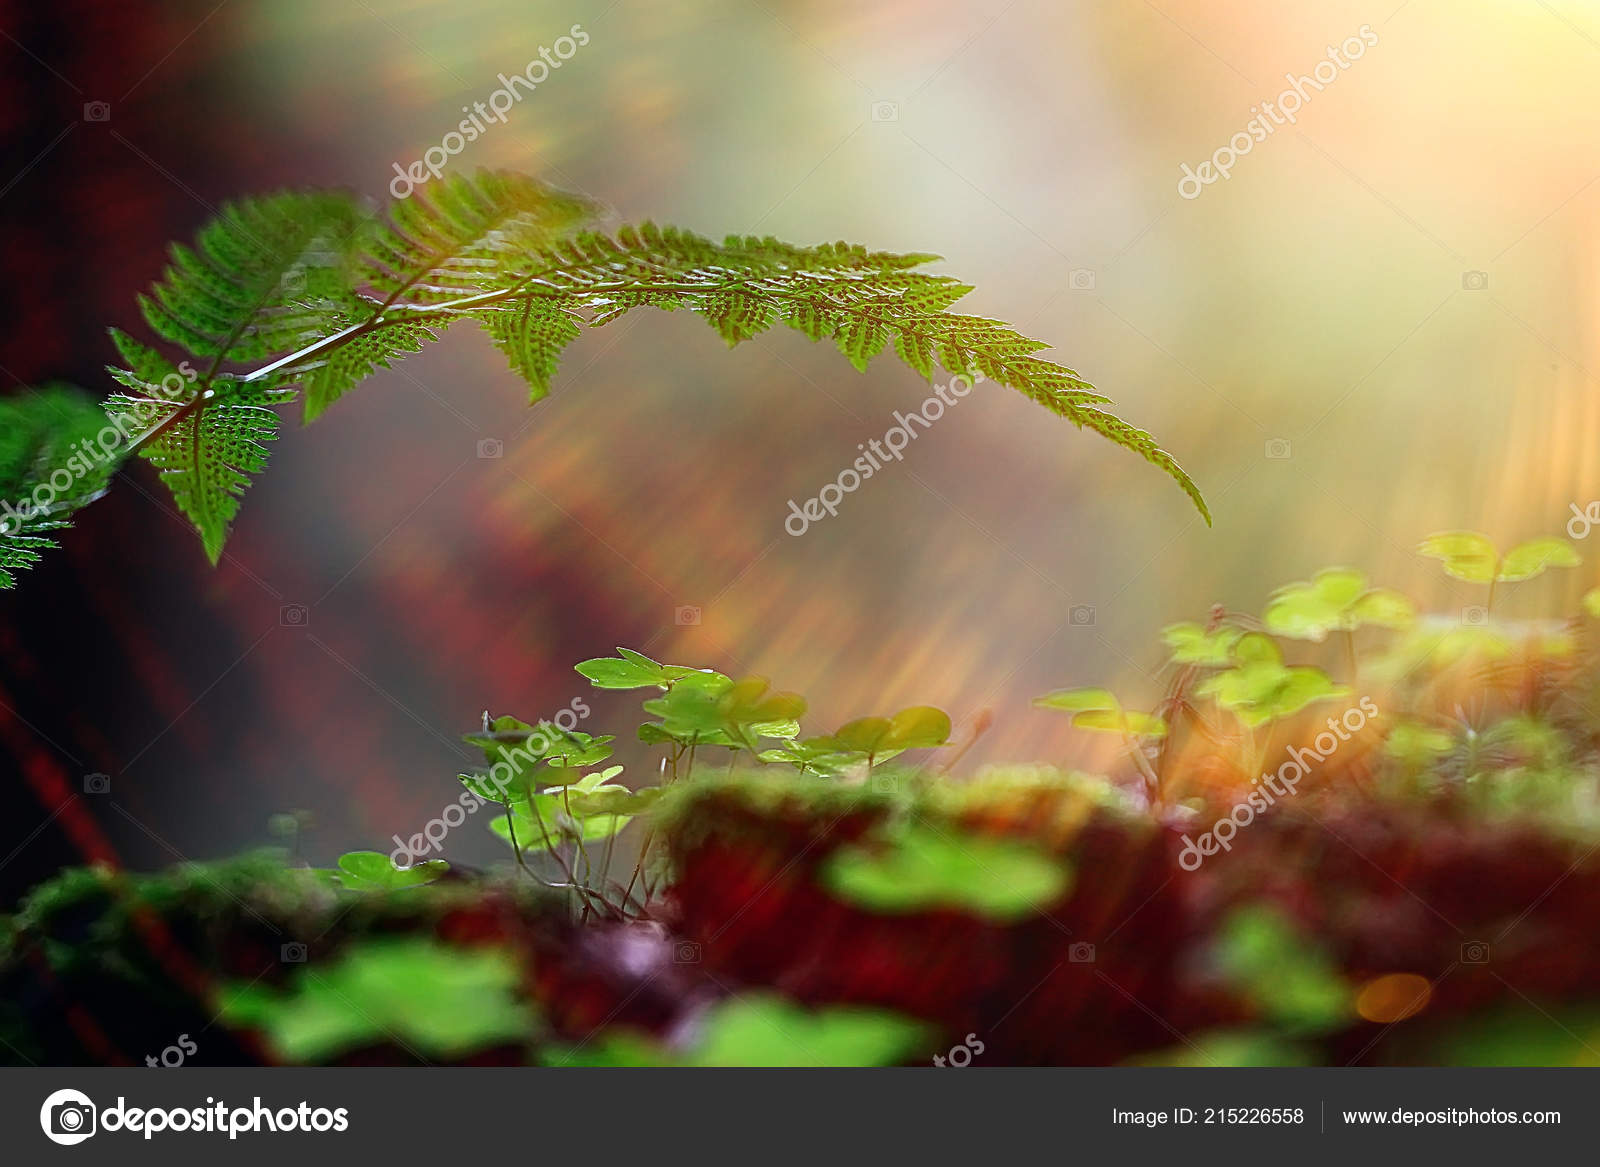 moss macro spring natural spring background rays sun moss nature